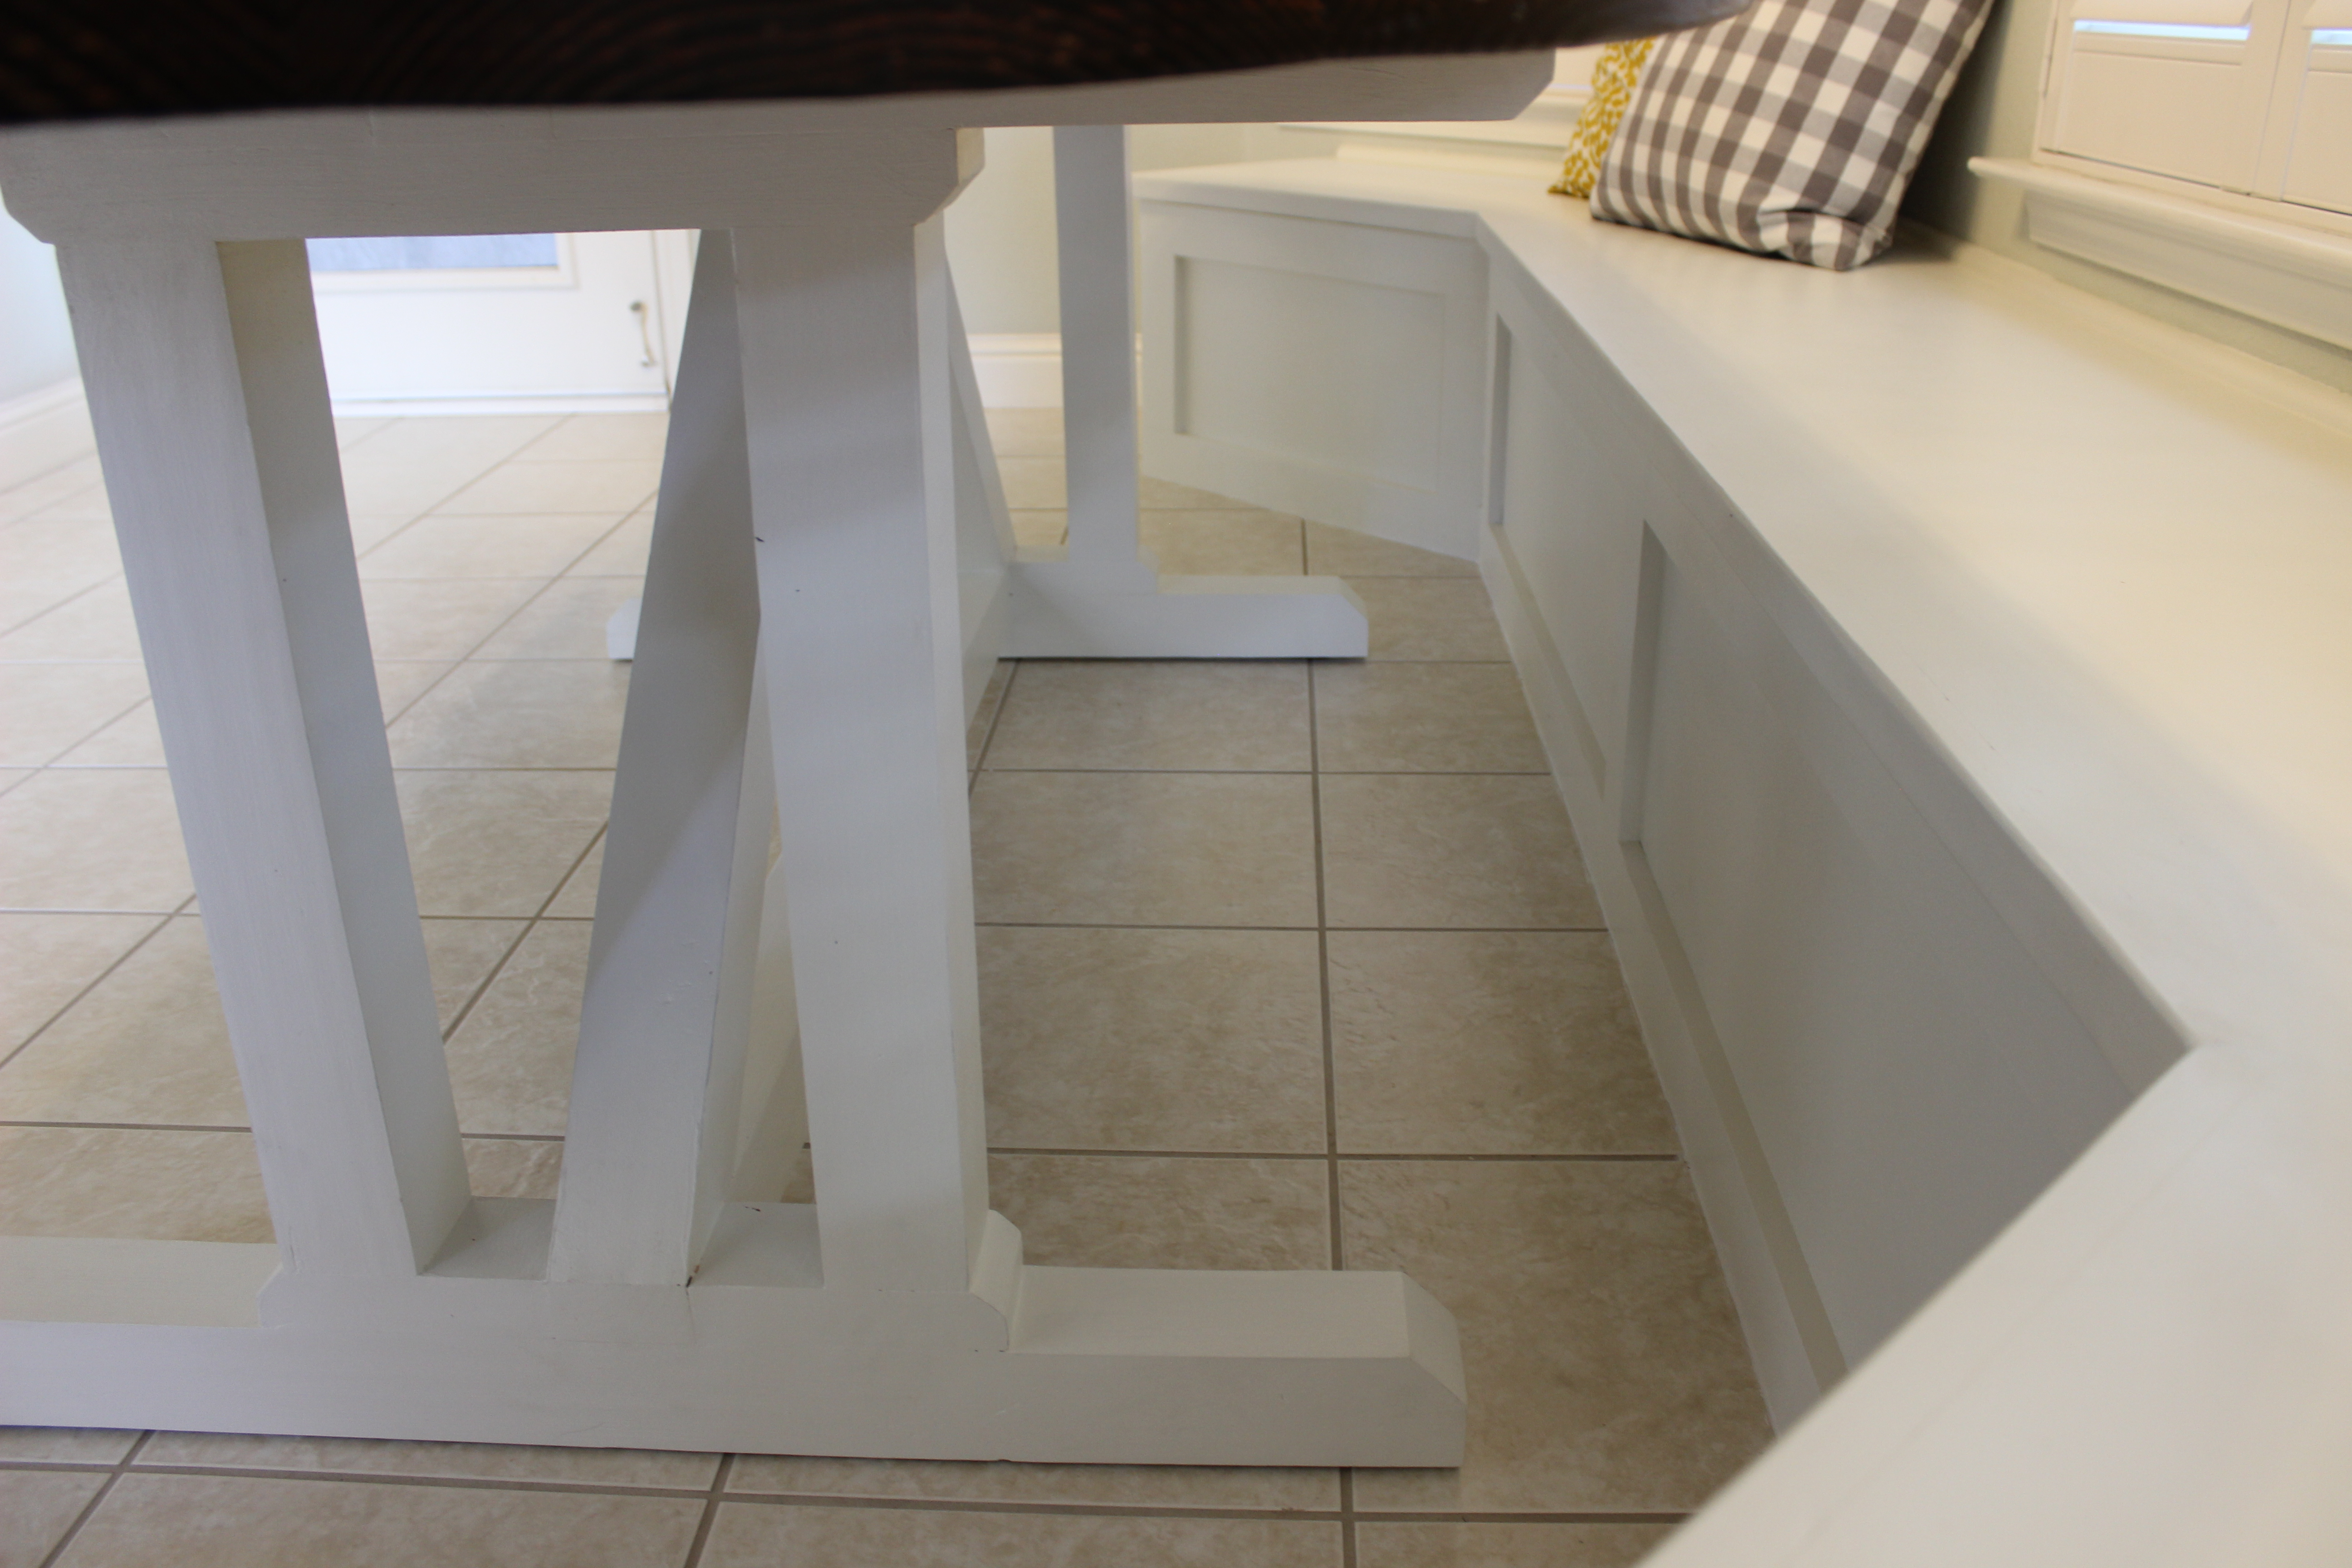 view of finished table base next to banquette seating